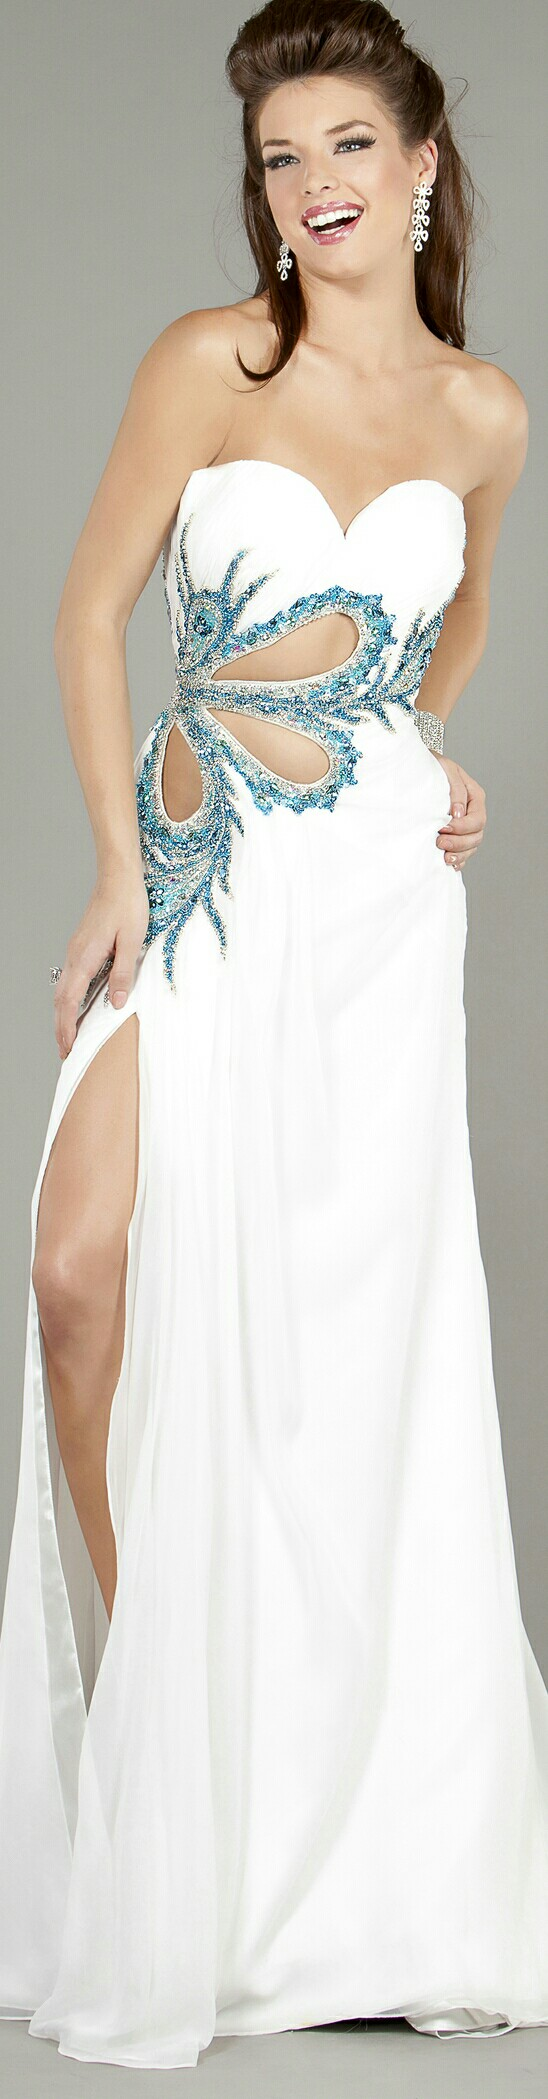 Jovani white promevening dress w teal paisley beading on r side